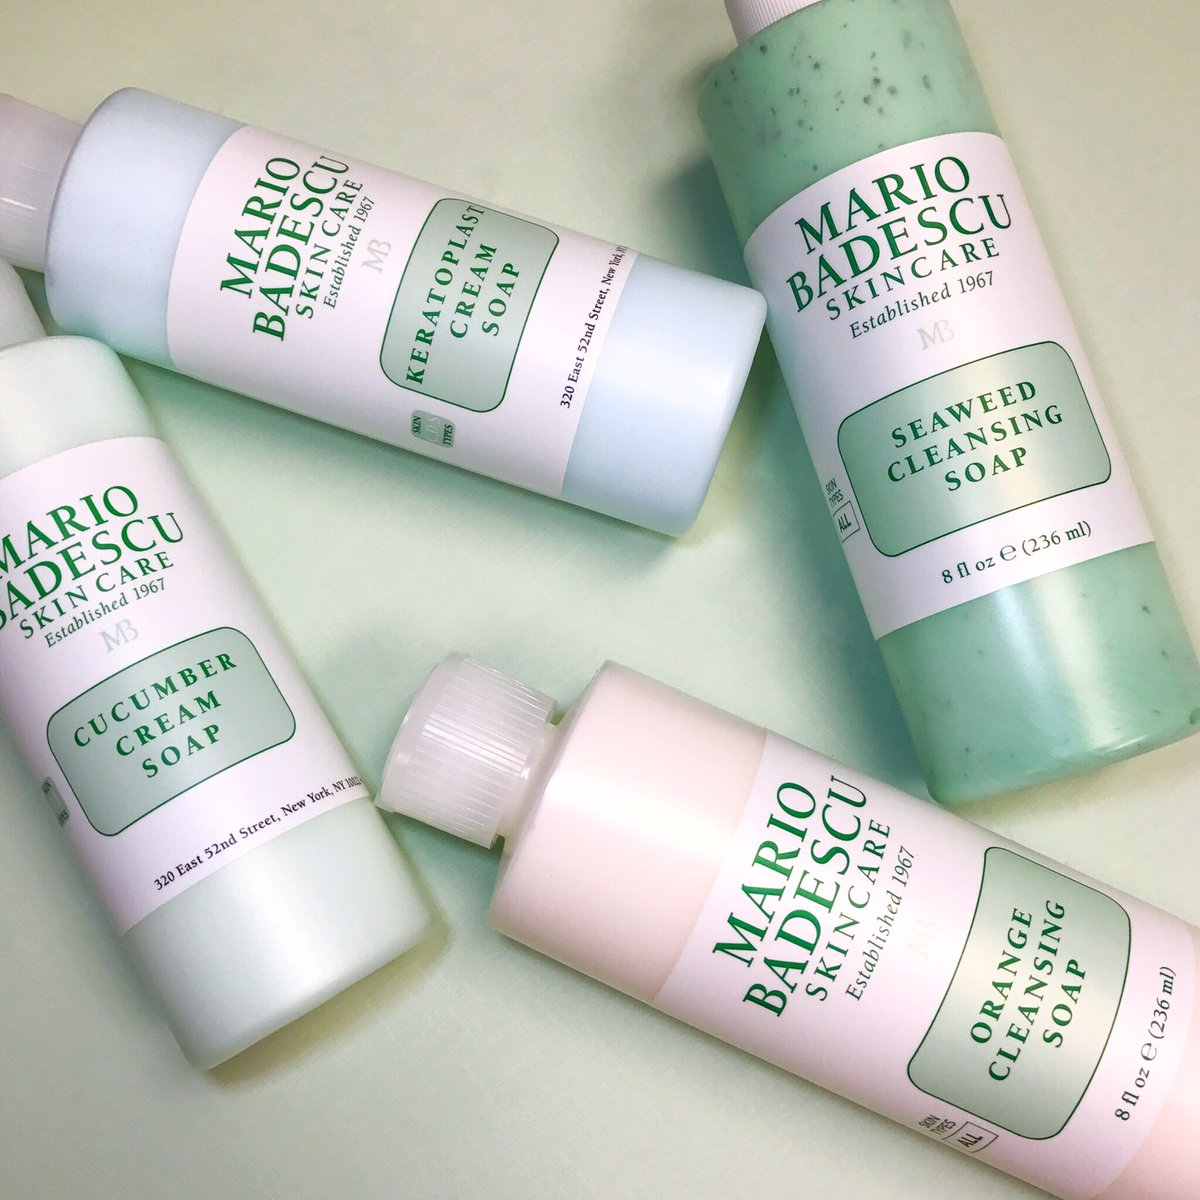 Mario Badescu On Twitter The Face Wash You Use Matters